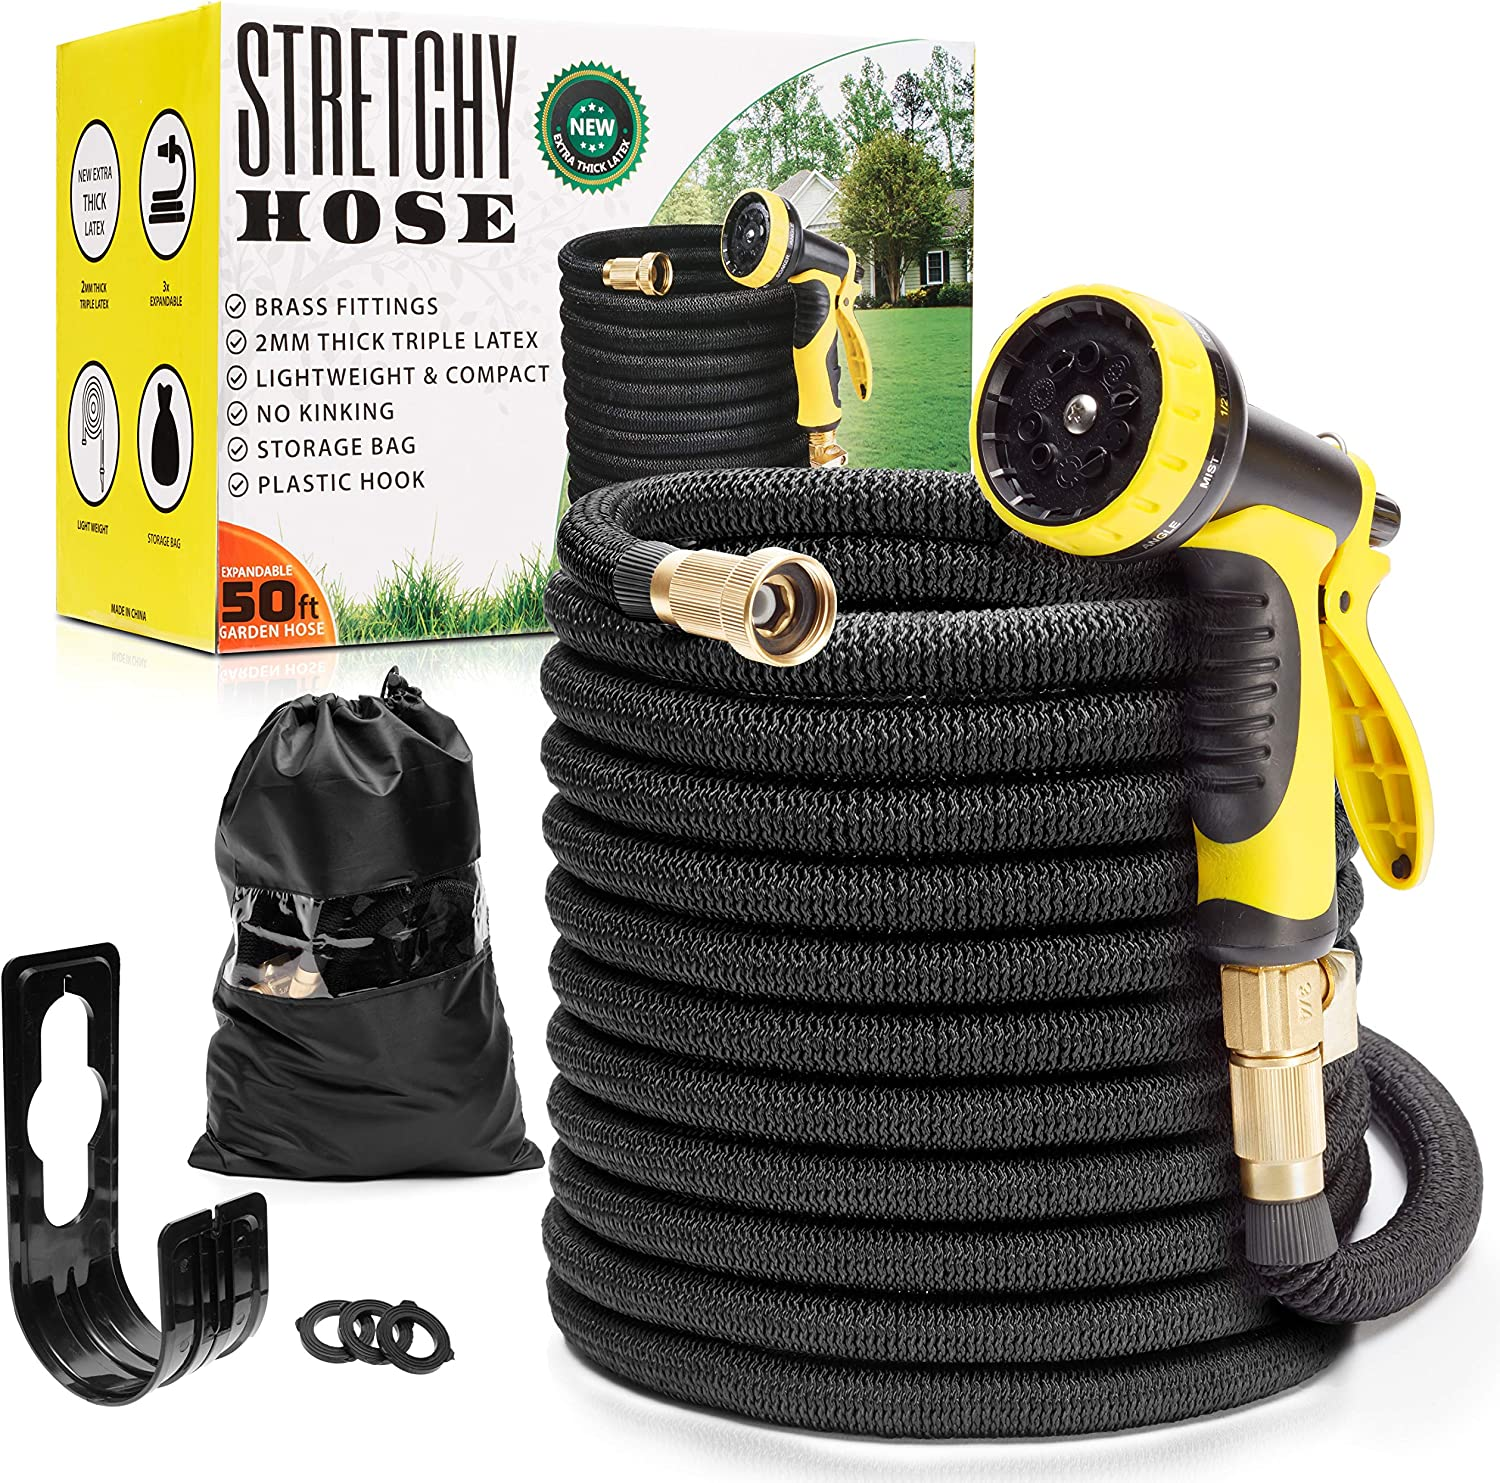 "Expandable Garden Hose 50 ft | Lightweight Garden Hose 50 ft | Never Kink Garden Hose 50 ft | Black Leak Proof Retractable Hose 50 ft | Solid 3/4"" Brass Connectors 